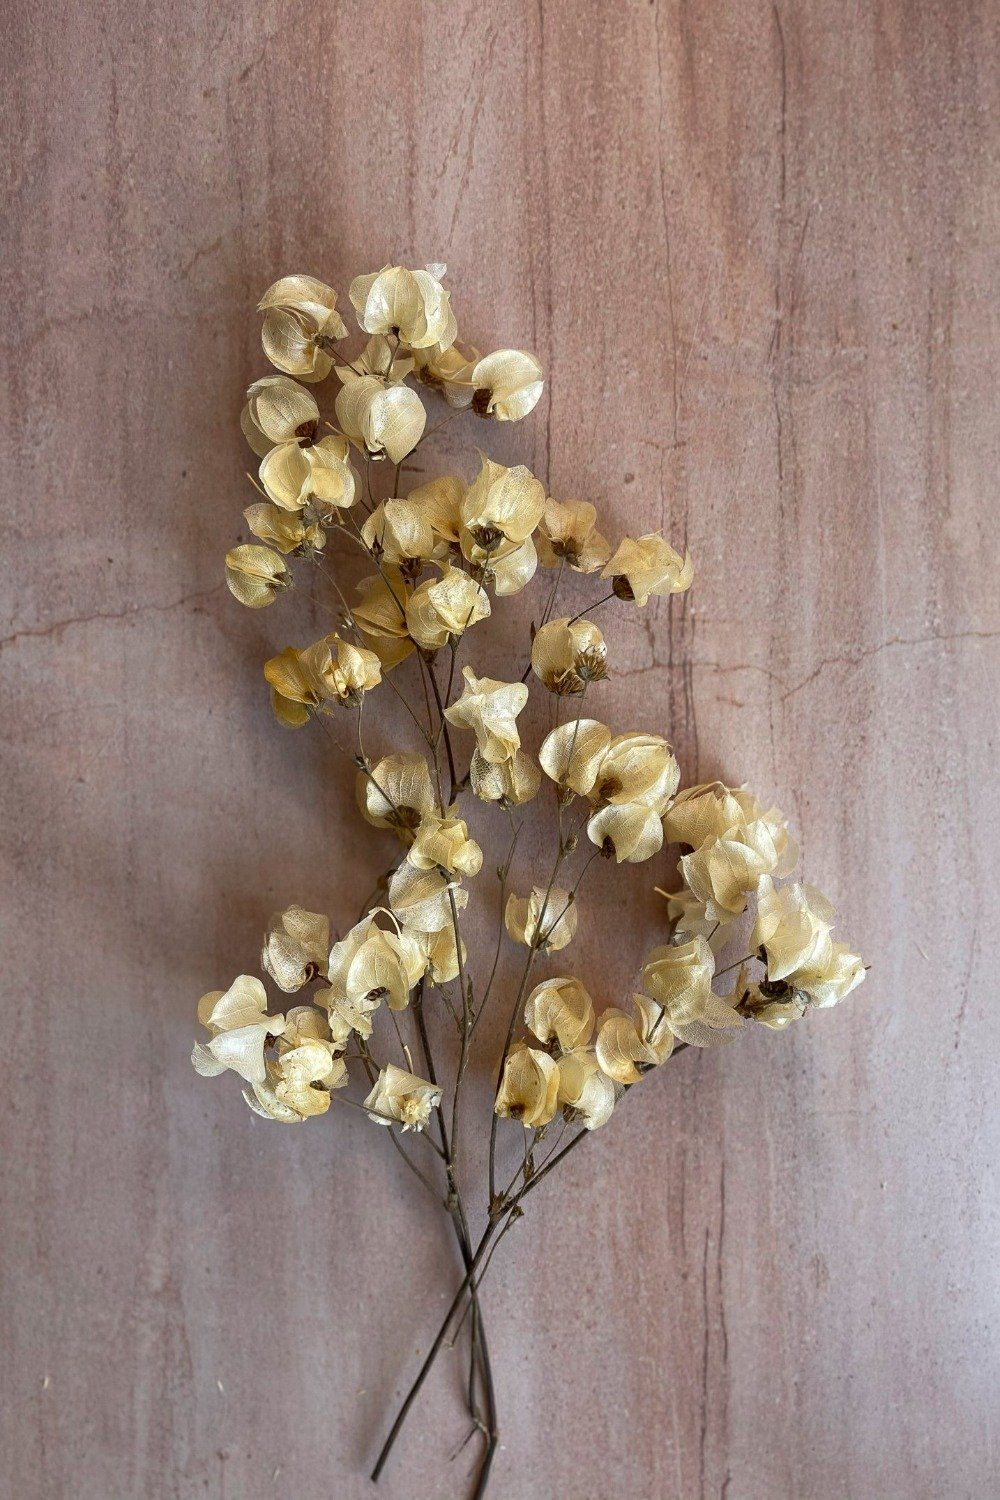 Dried Bougainvillea - White Dried Flowers Blume